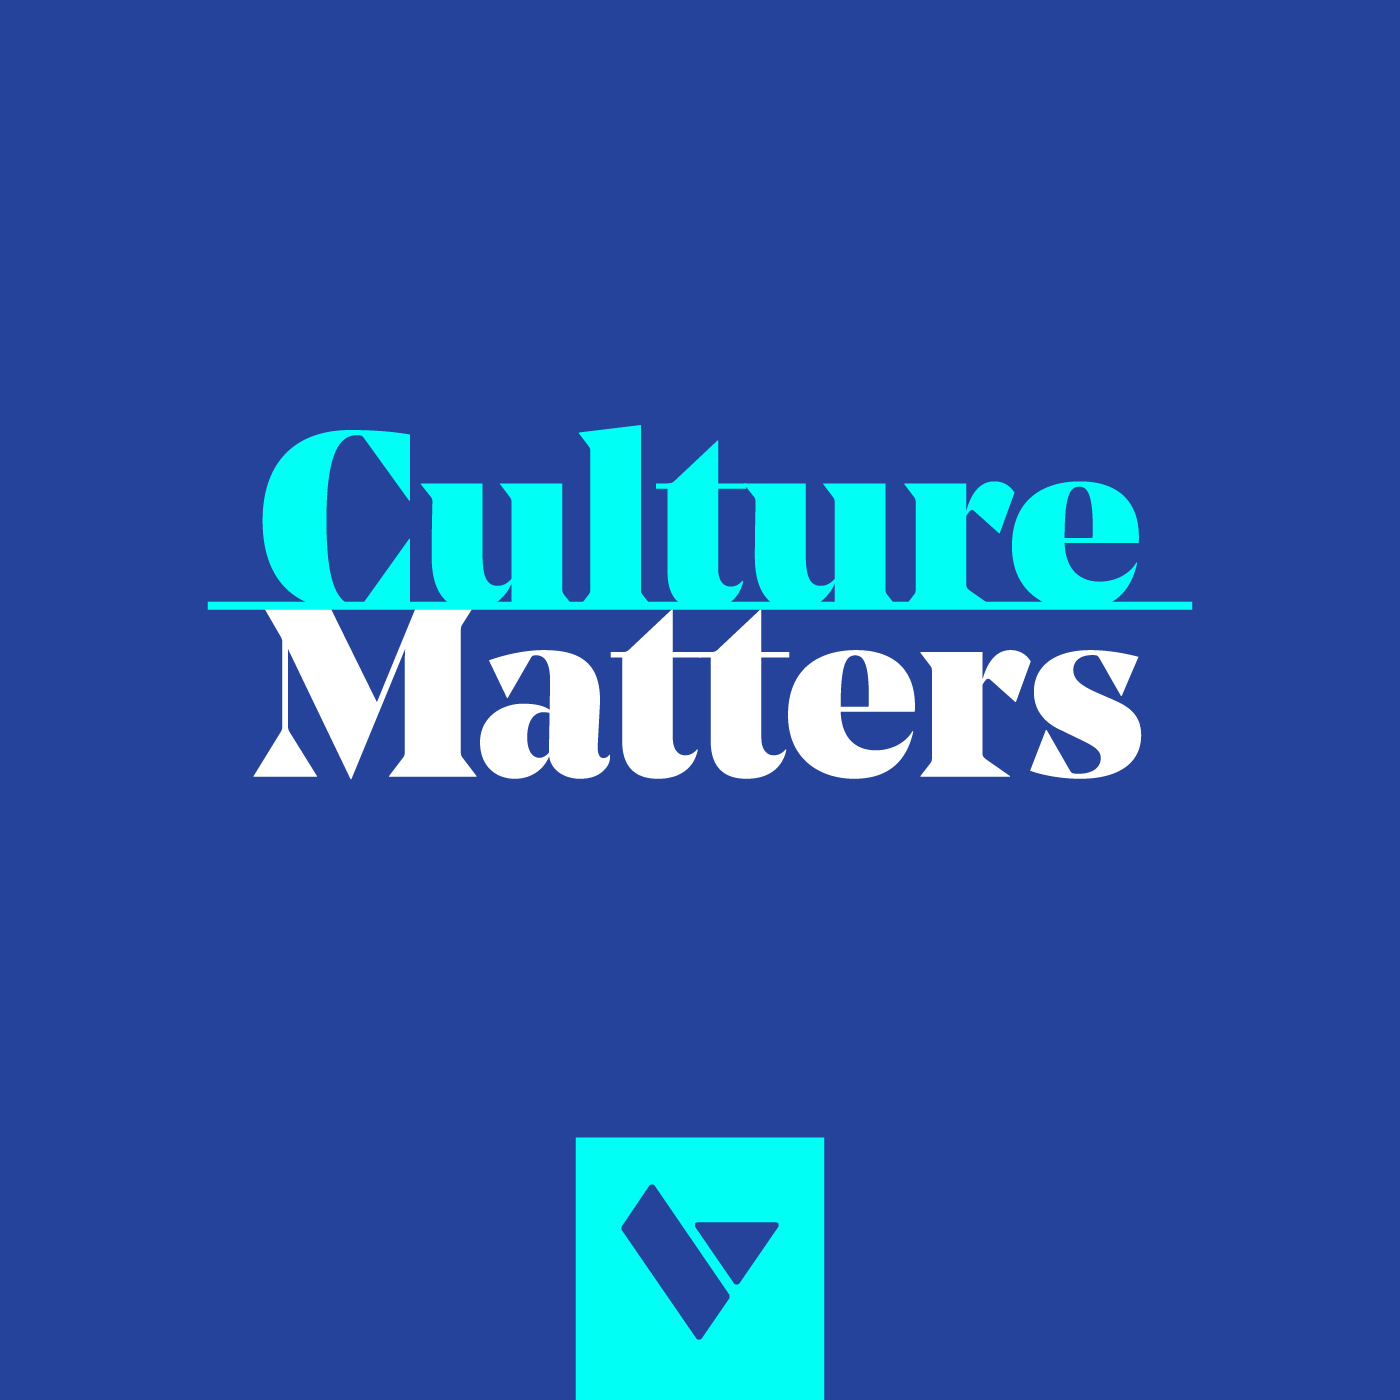 Culture Matters from the Village Church in DFW, Texas